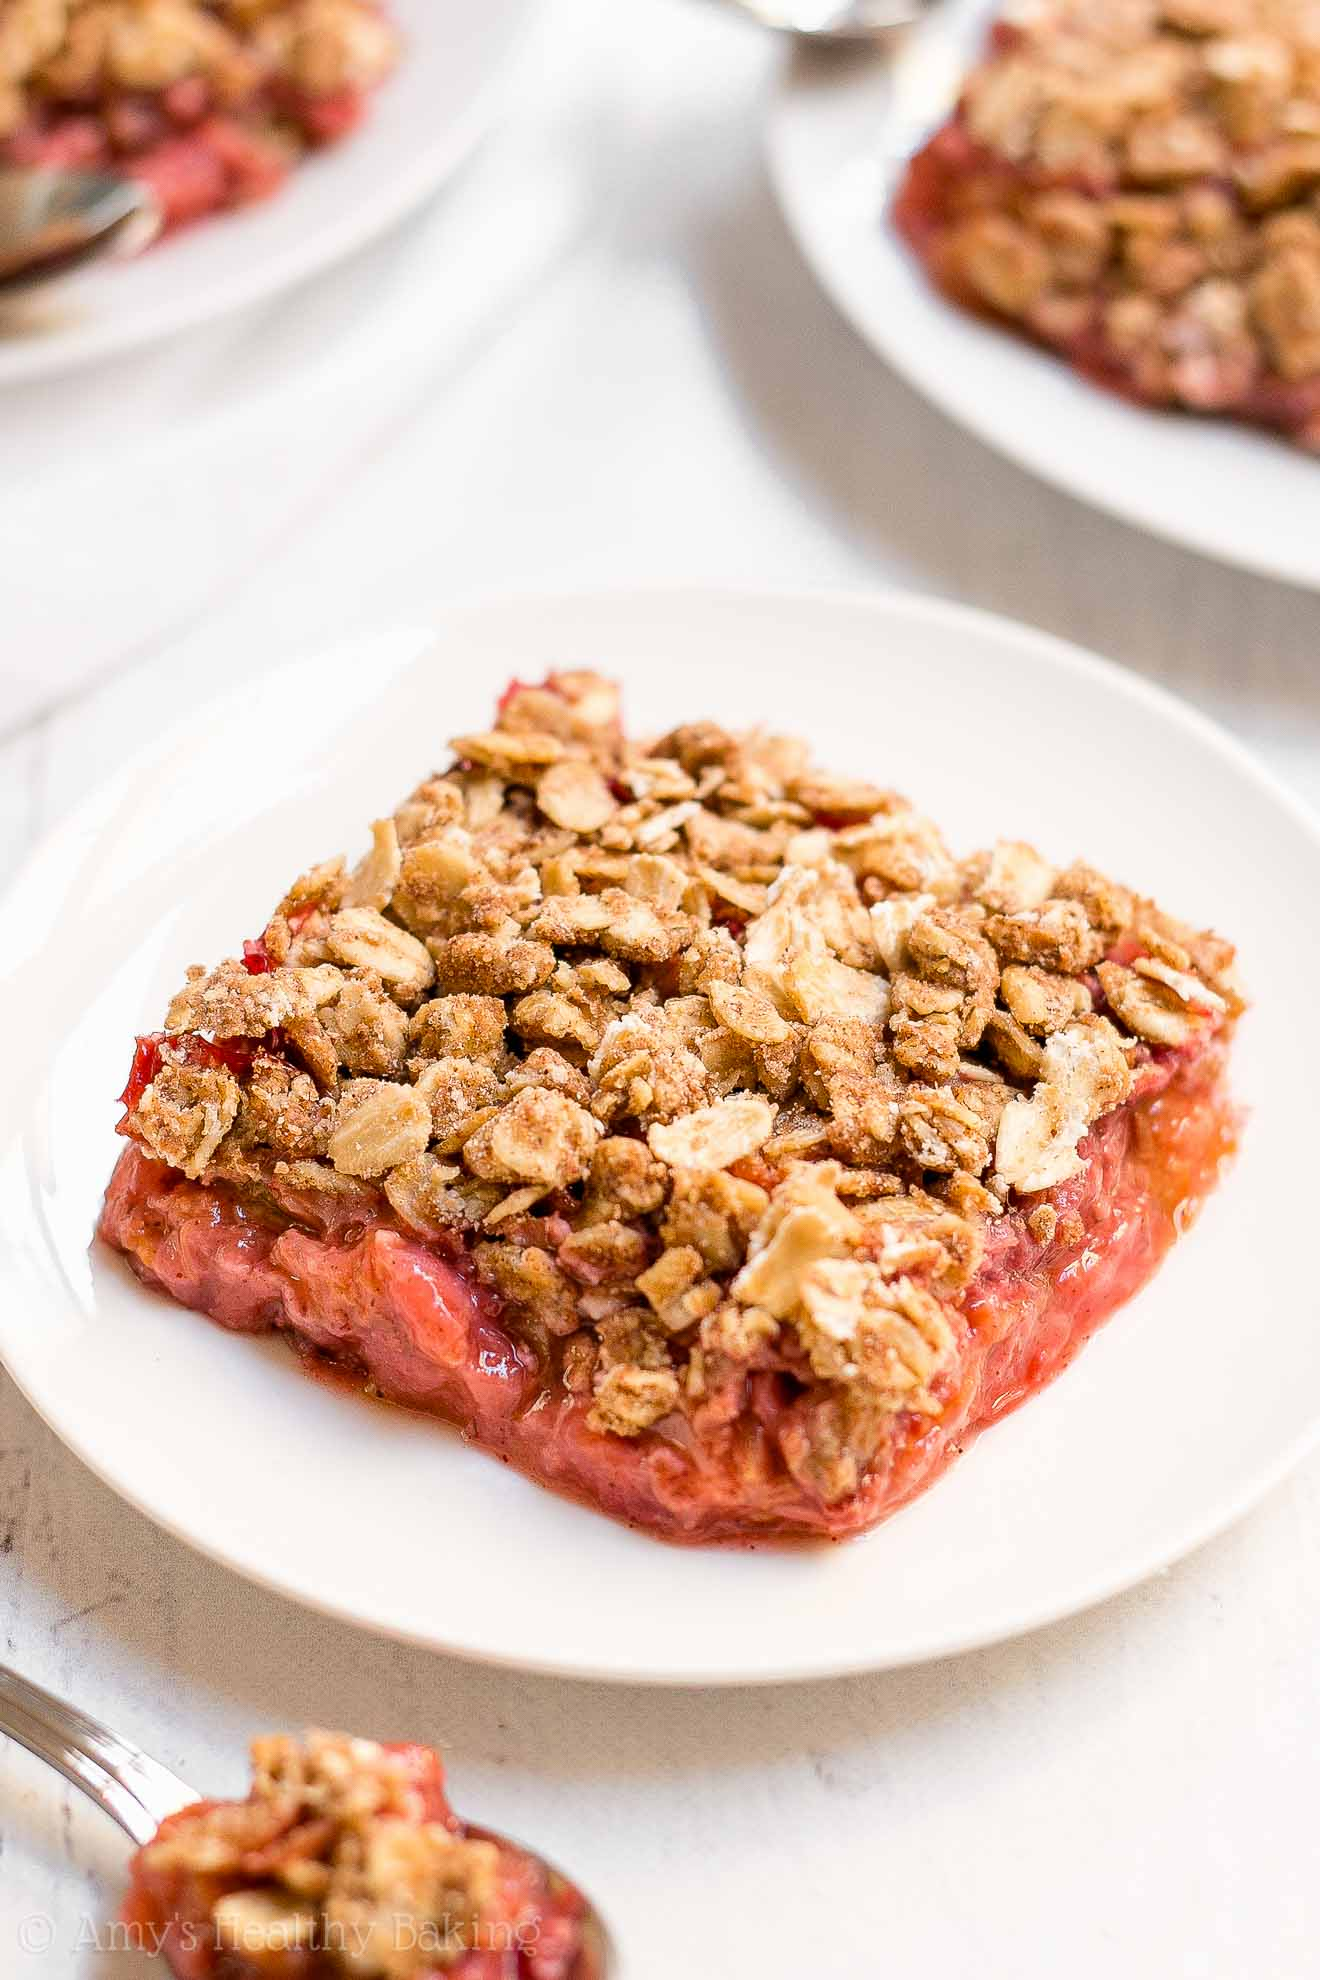 Clean Eating Healthy Strawberry Rhubarb Crumble with Oat Streusel Topping